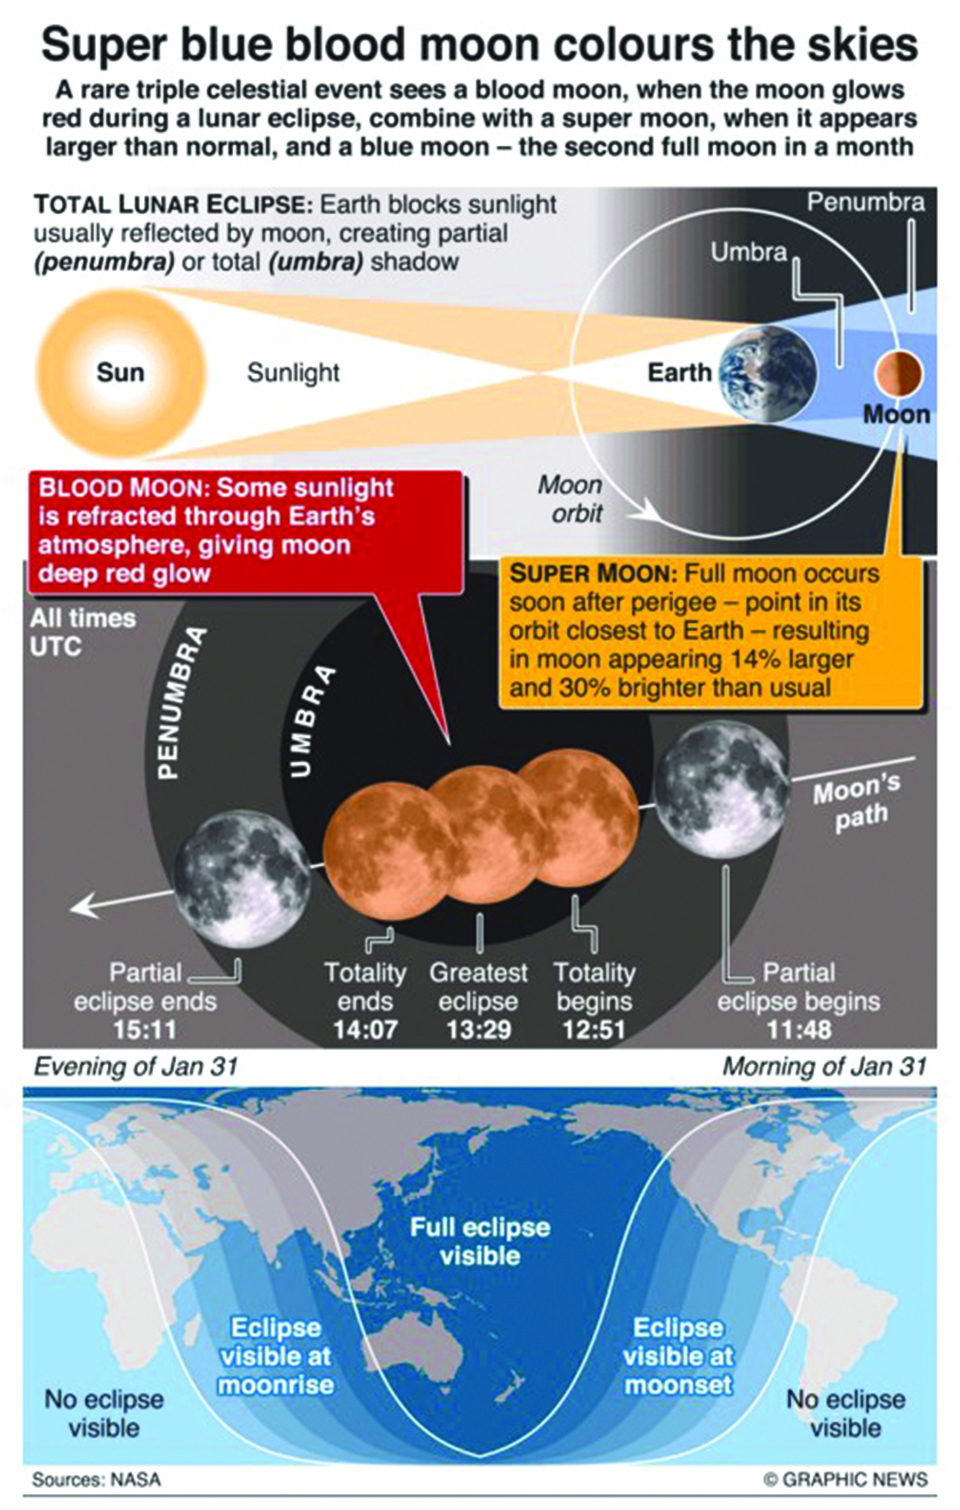 Infographics: Super blue blood moon color skies